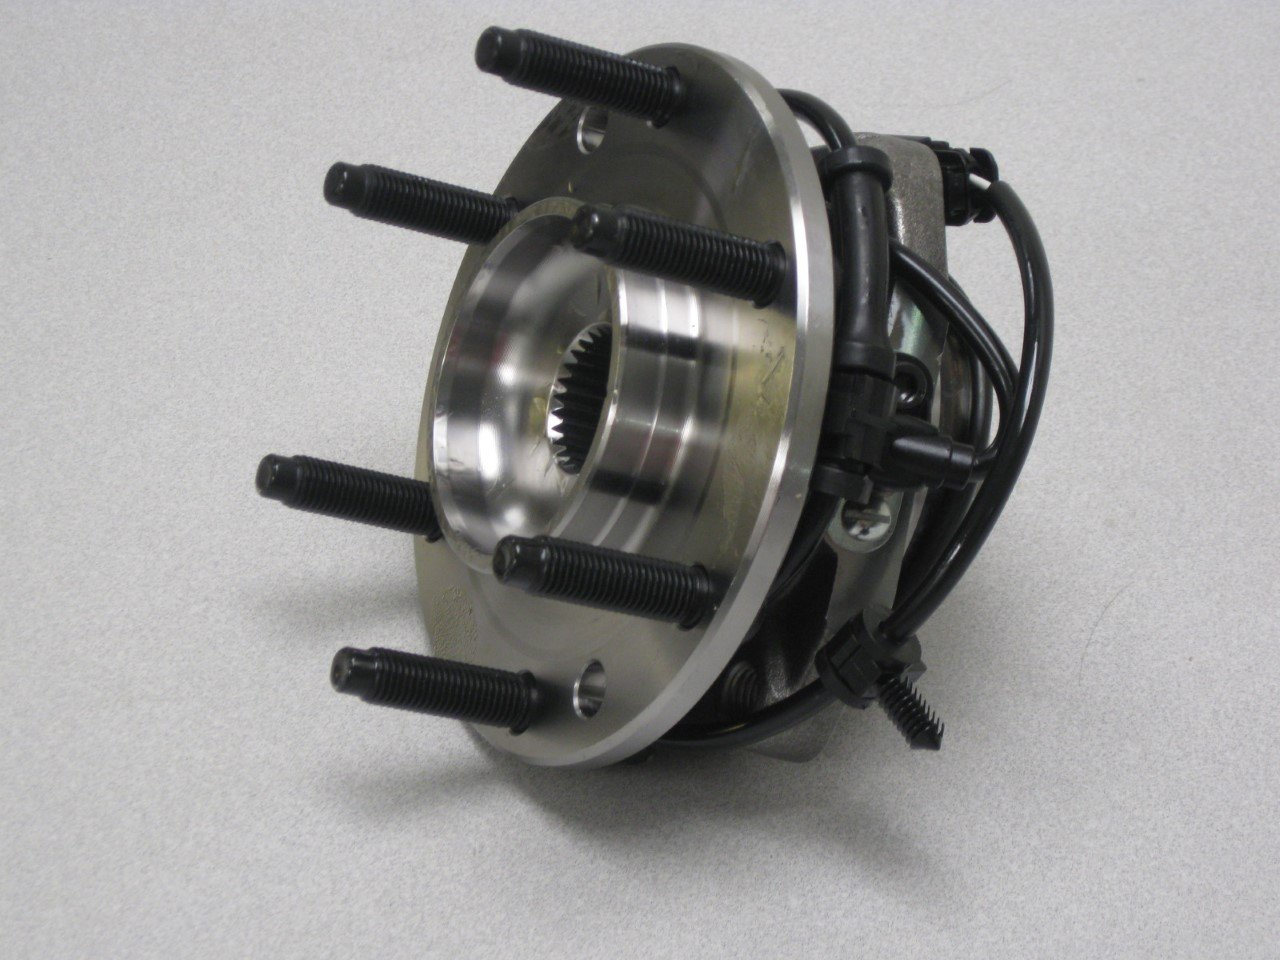 AC Delco F3Q005MX/ FW121/19103094 GM Original Front Wheel Hub and Bearing Assembly with Wheel Speed Sensor and Wheel Studs